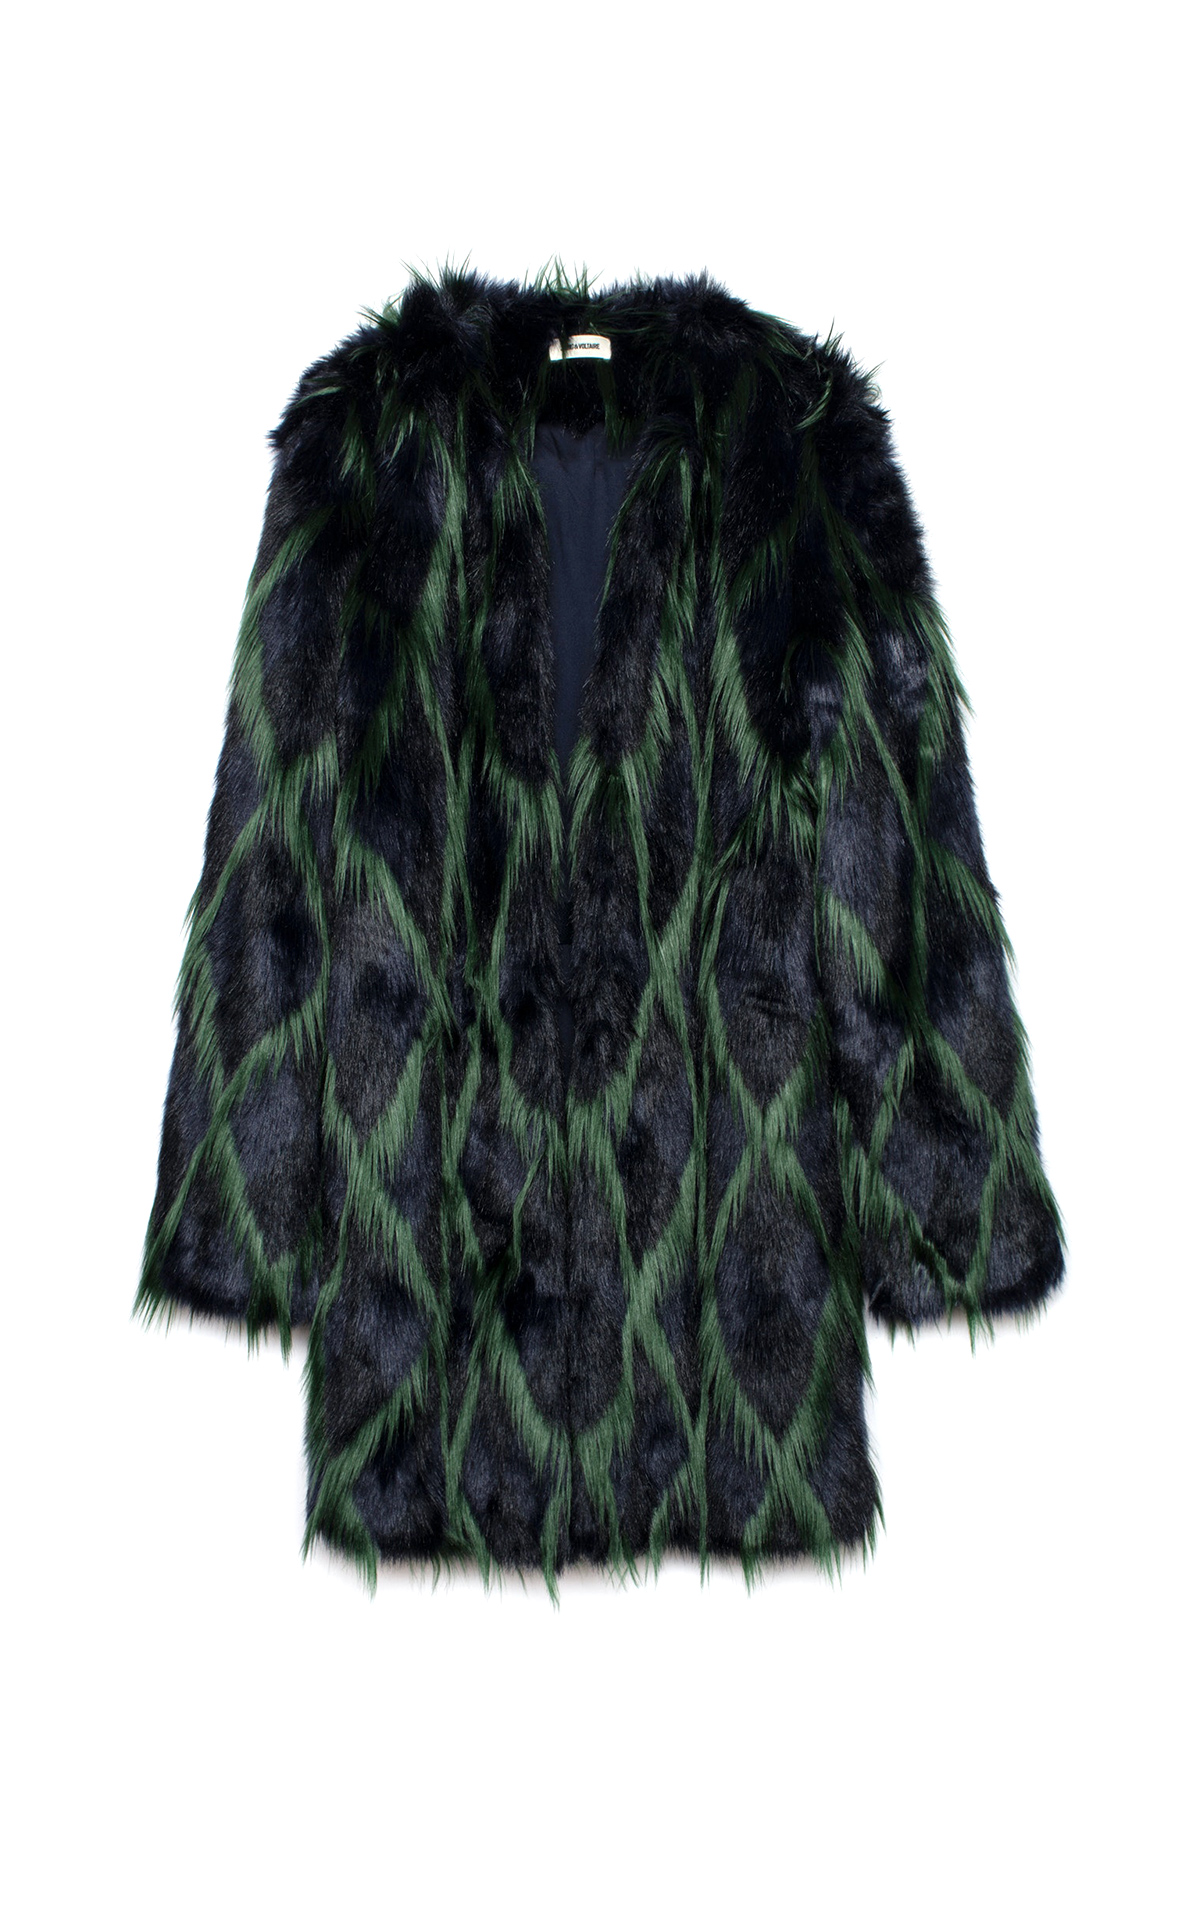 Black and green fur coat Zadig & Voltaire